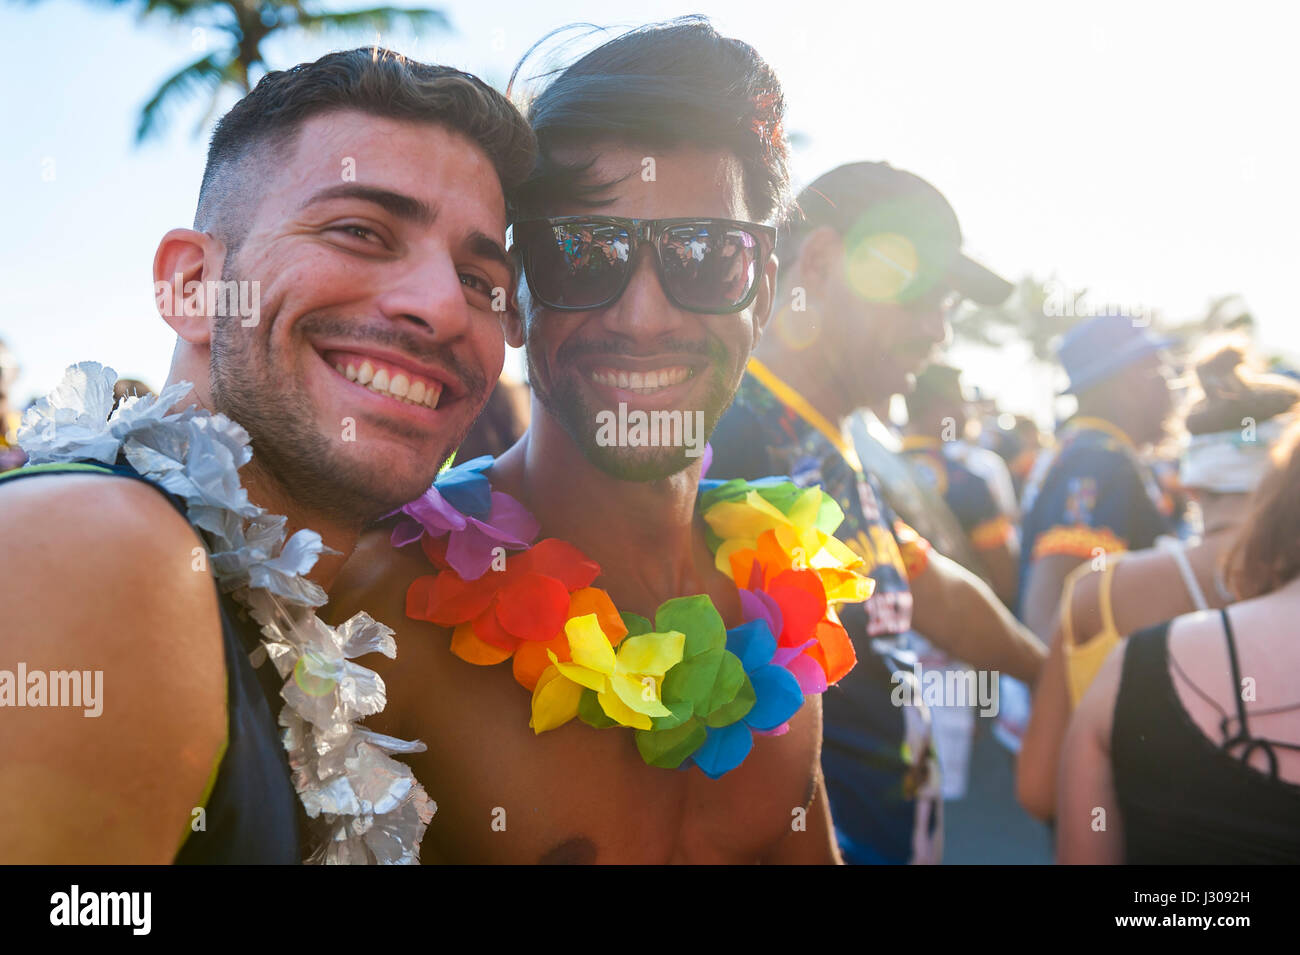 RIO DE JANEIRO - FEBRUARY 11, 2017: Young Brazilian friends celebrate carnival at a street party in Ipanema. - Stock Image